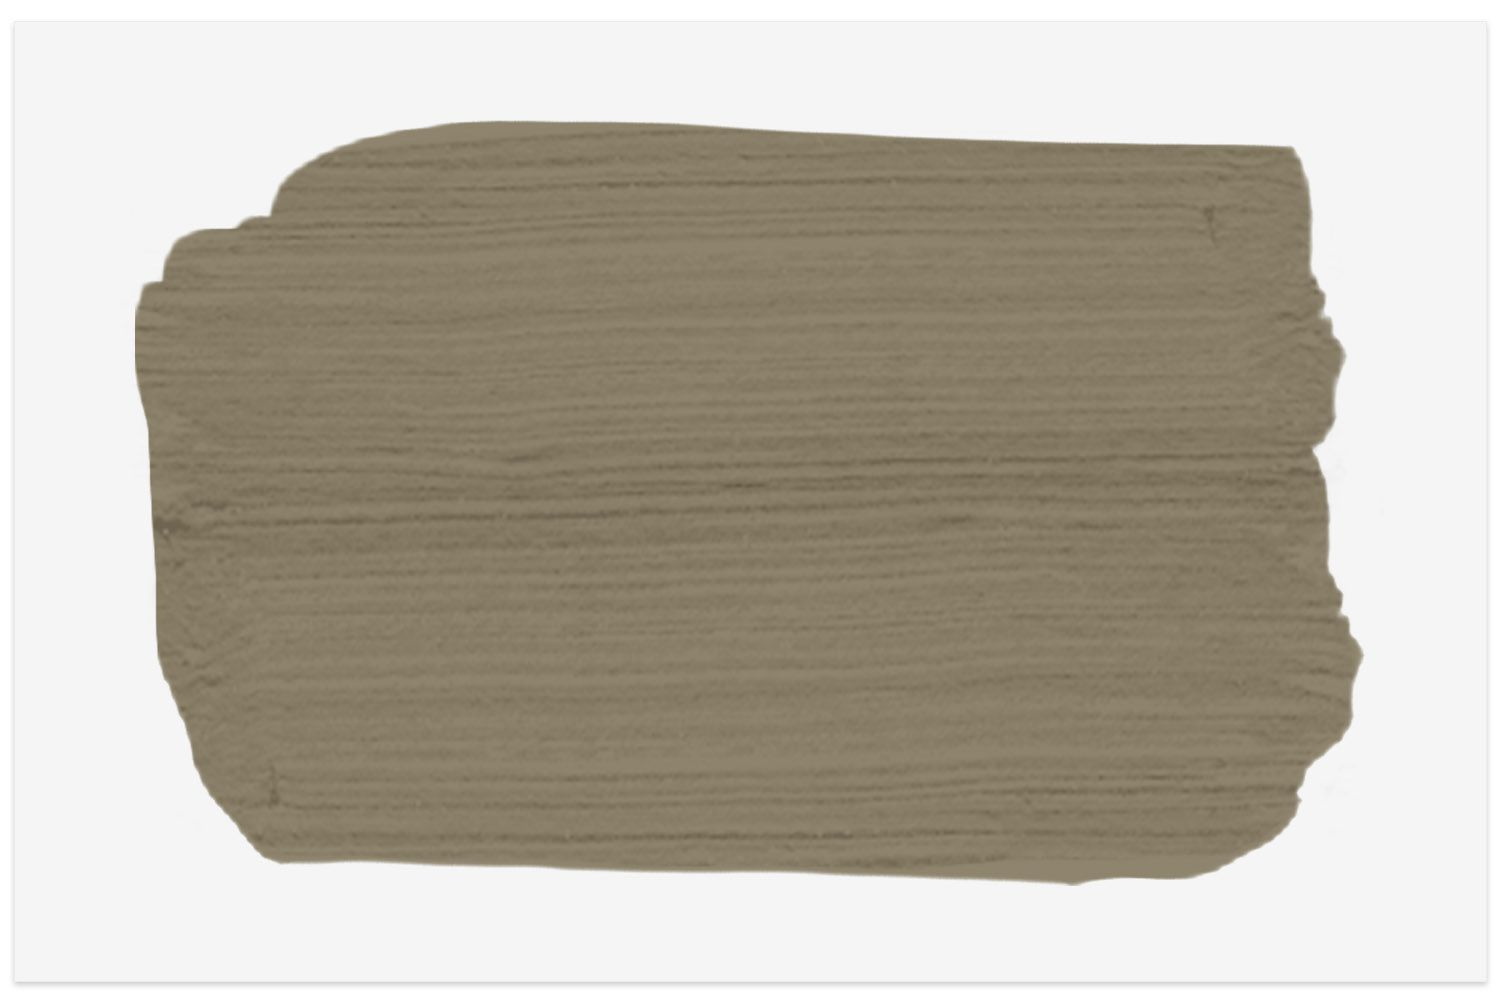 Quiver Tan paint swatch from Sherwin Williams